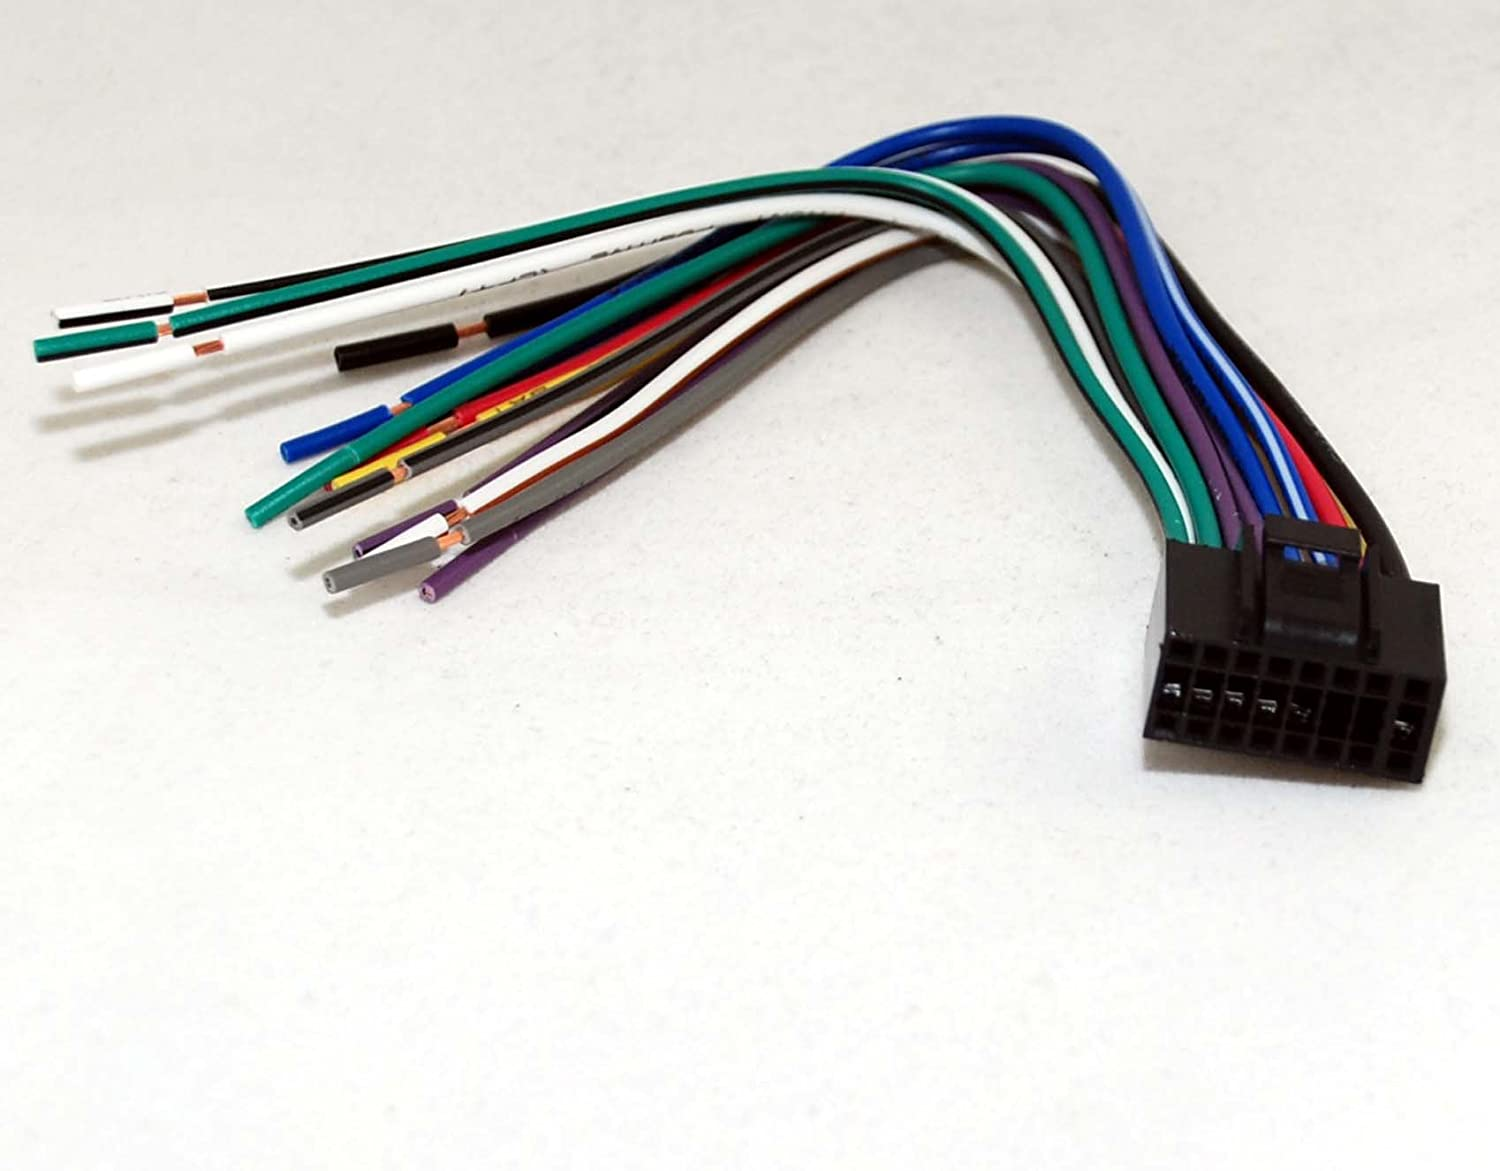 61Rzeblbo0L._SL1500_ amazon com xtenzi harness for dual 16 pin wire harness xdvd8181 dual 16 pin wire harness at crackthecode.co